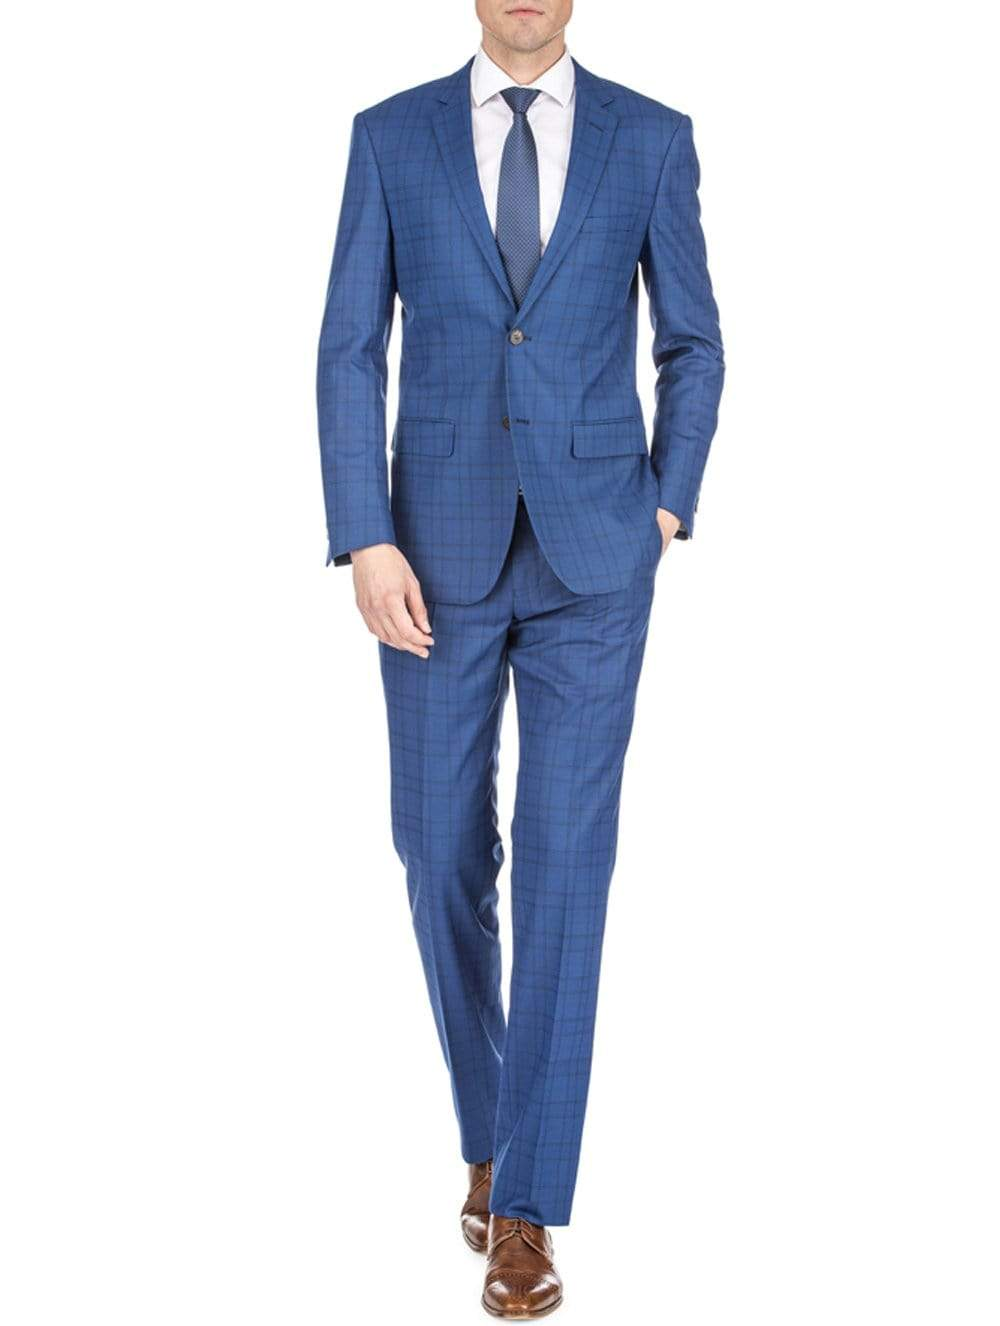 DAILY HAUTE Men's Suits DARK BLUE / 36Rx30W Gino Vitale Men's Harrogate Windowpane Slim Fit 2PC Suits